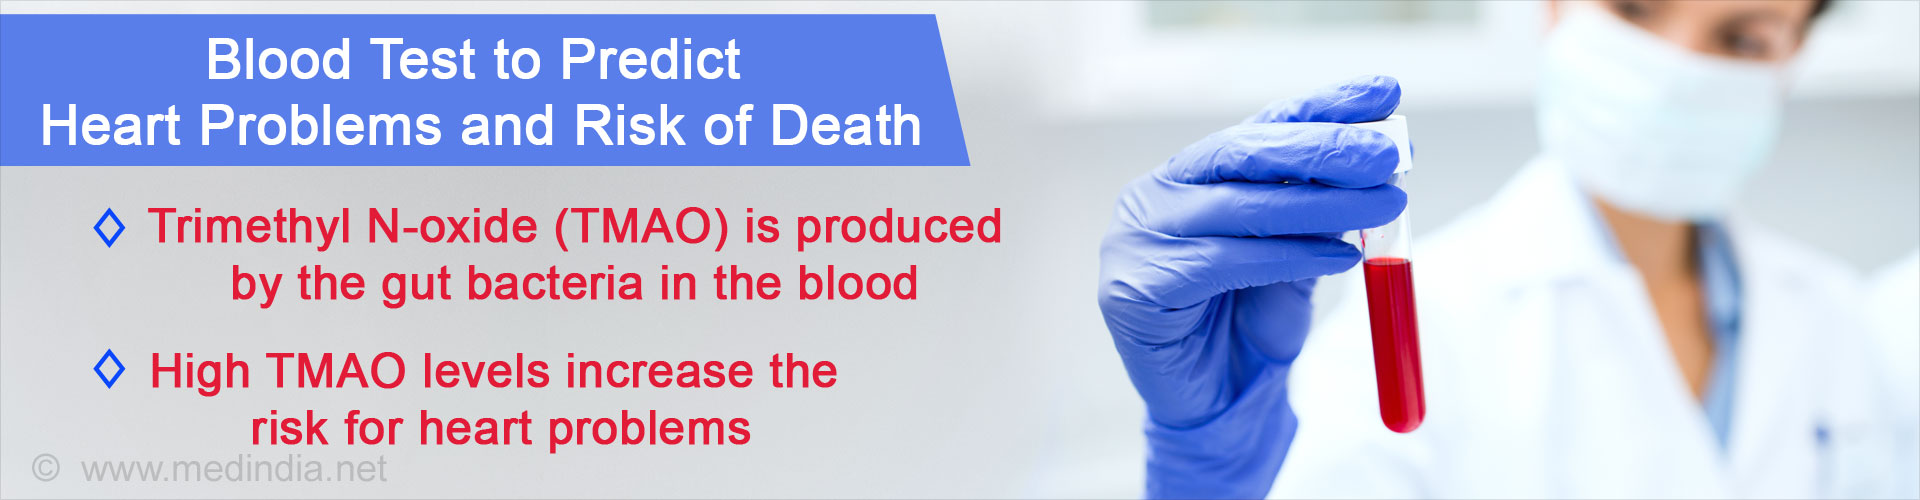 Blood Test May Help to Predict the Risk of Death and Heart Problems